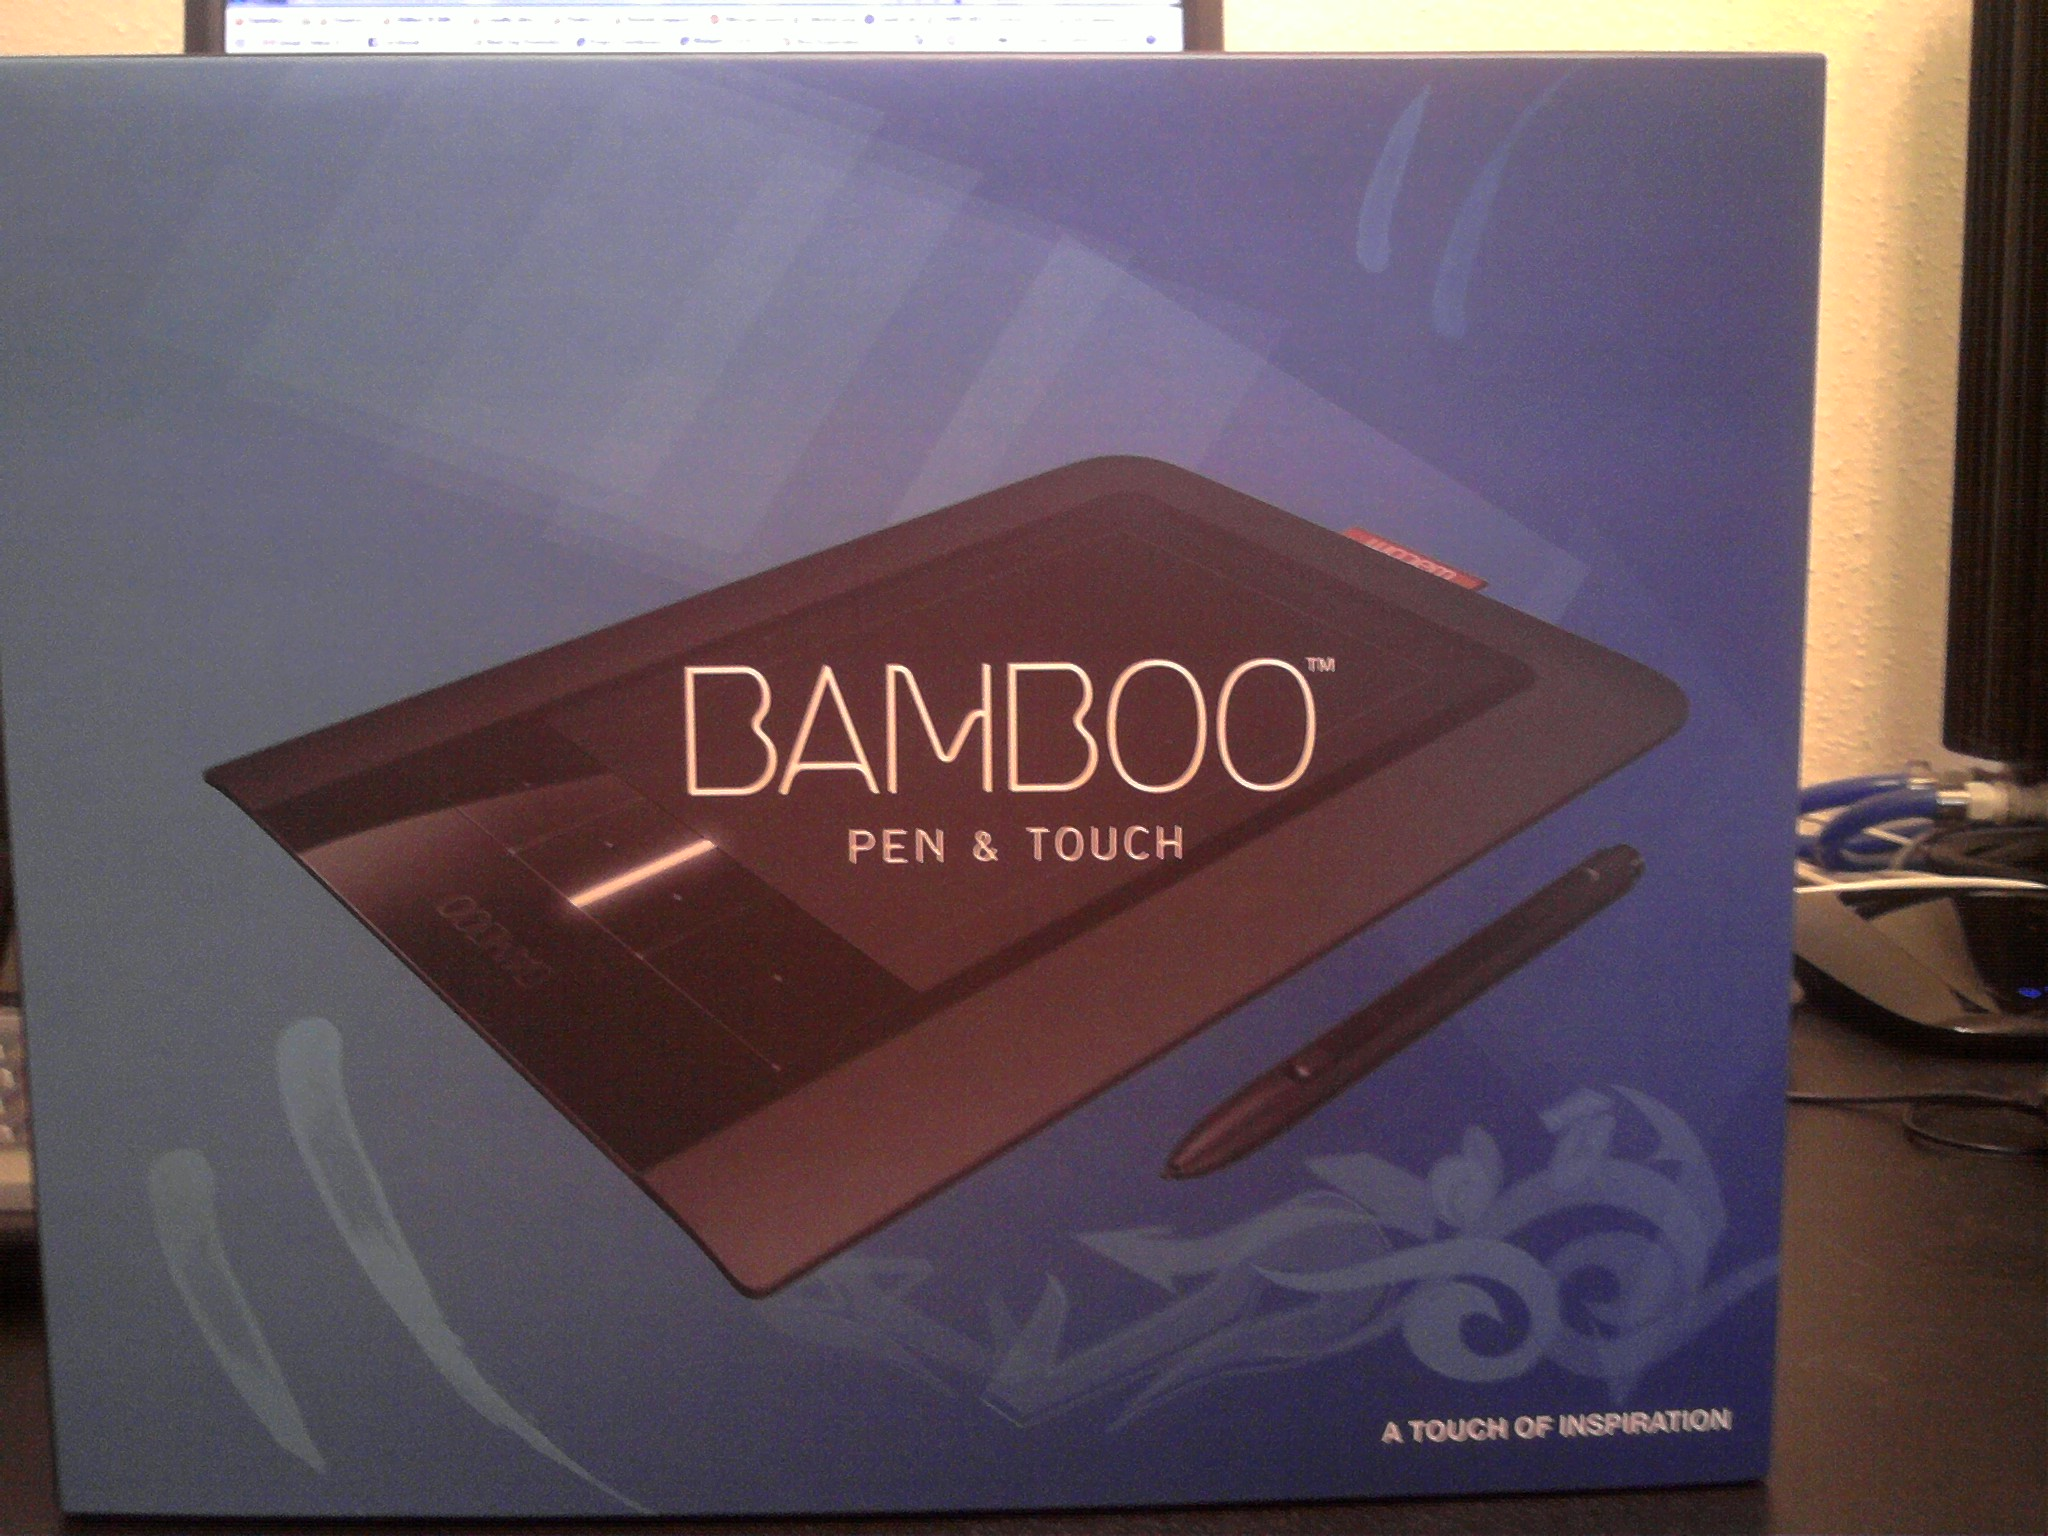 Wacom Bamboo Tablet and Pen